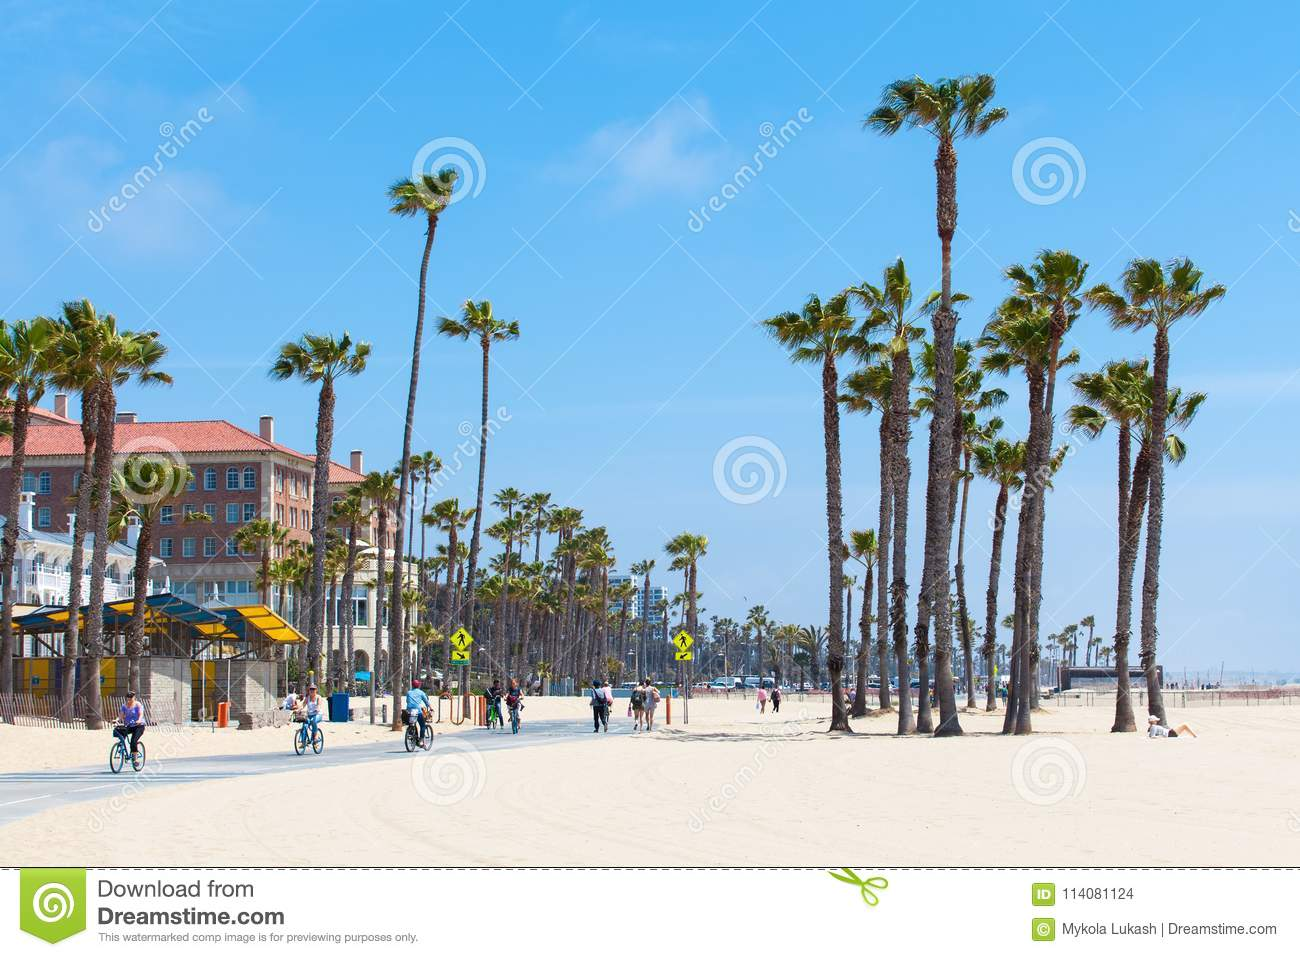 VENICE BEACH, UNITED STATES - MAY 14, 2016: People enjoying a sunny day on the beach of Venice, Los Angeles, California, USA